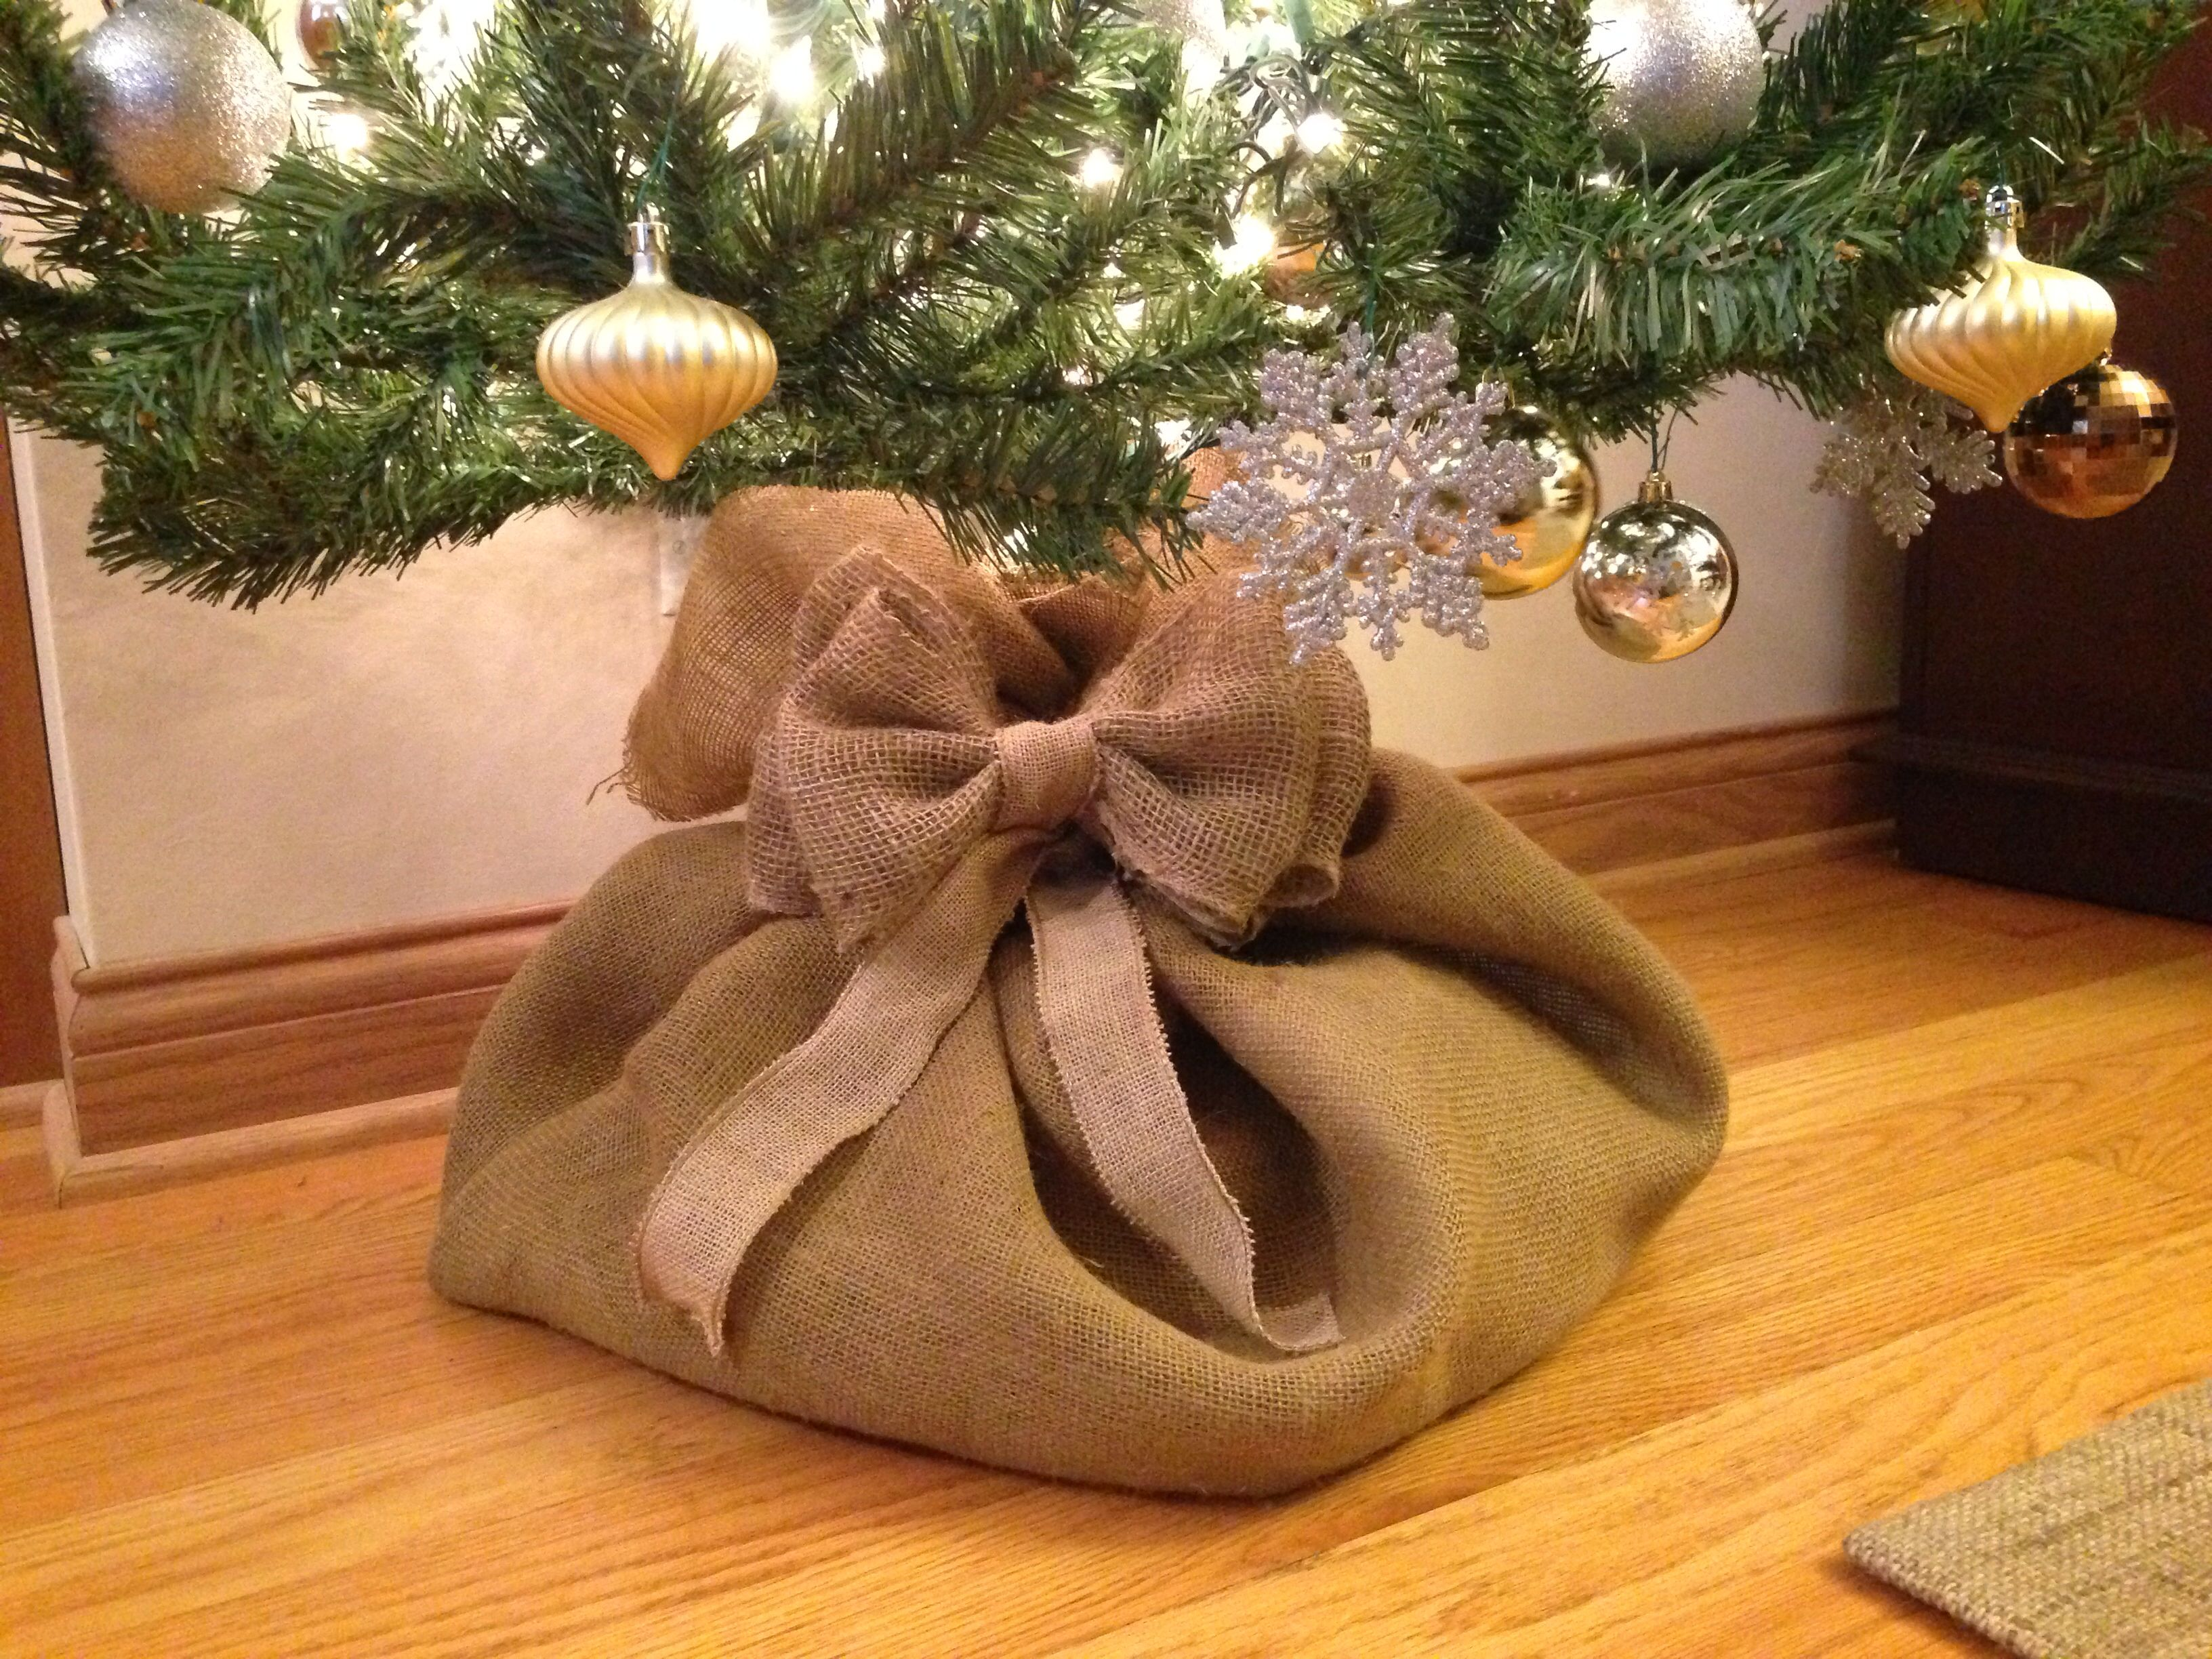 Fengrise Diy Felt Christmas Tree Kids Artificial Tree Ornaments Christmas Stand Decorations Gifts New Year Xmas Decoration Christmas Tree Burlap Sack I Think I Need To Make This Instead Of